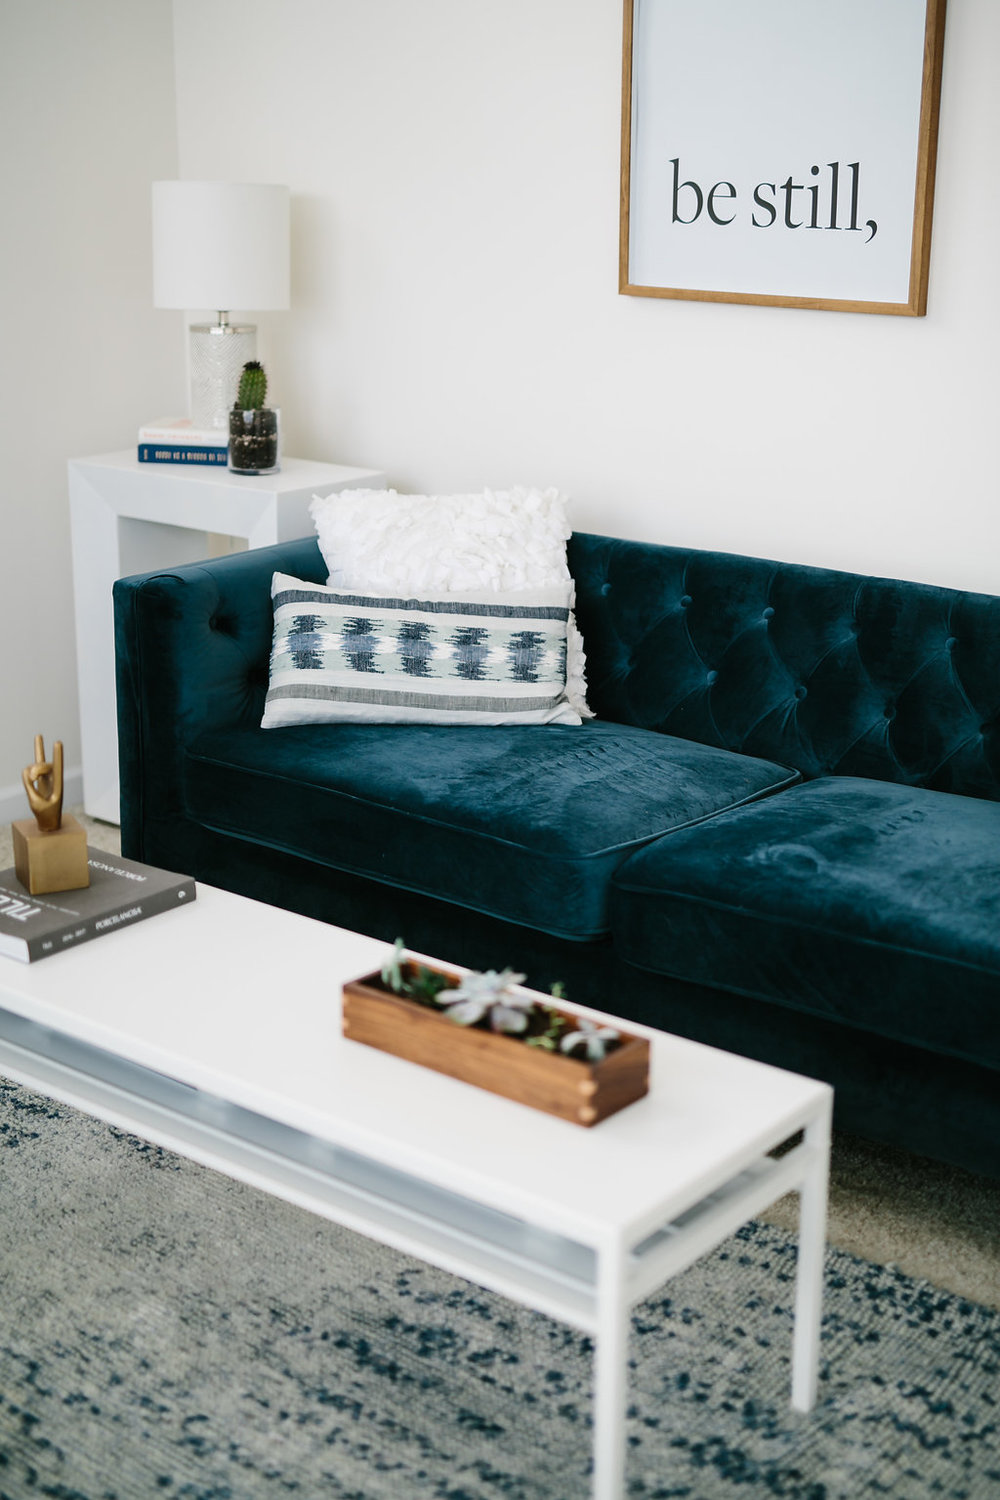 Tufted blue sofa and white coffee table with decor accents.